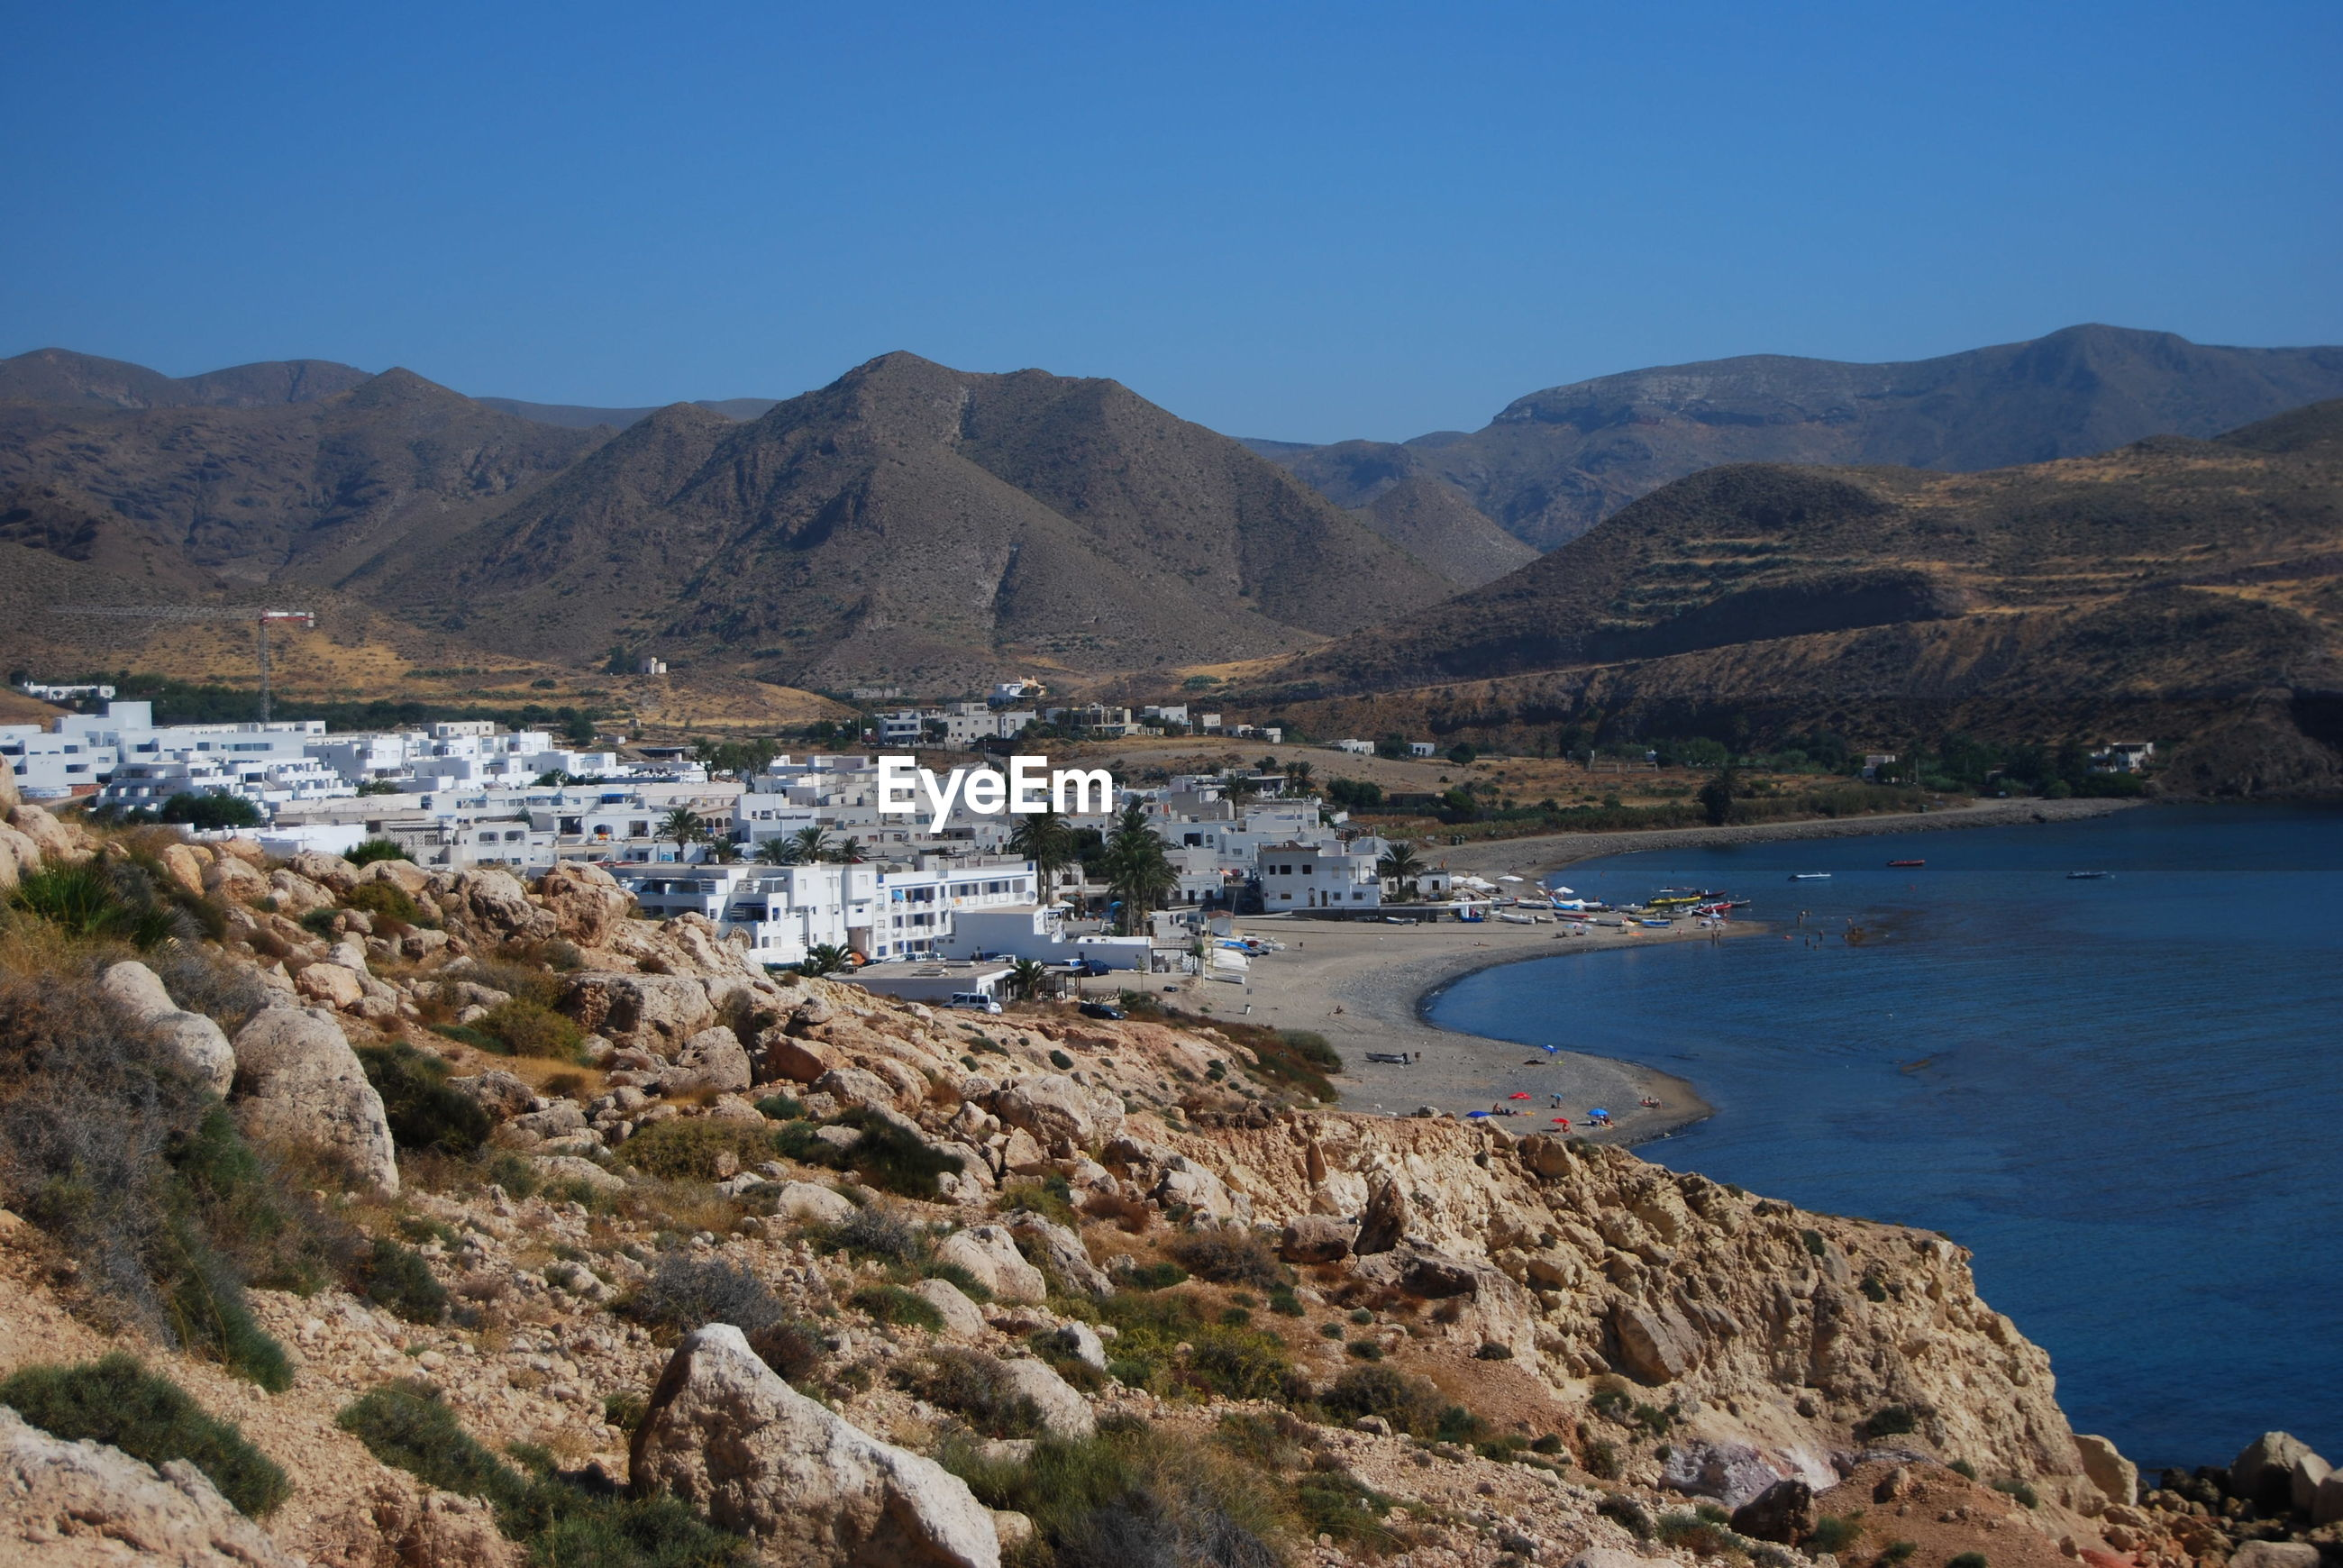 SCENIC VIEW OF MOUNTAINS BY SEA AGAINST CLEAR BLUE SKY